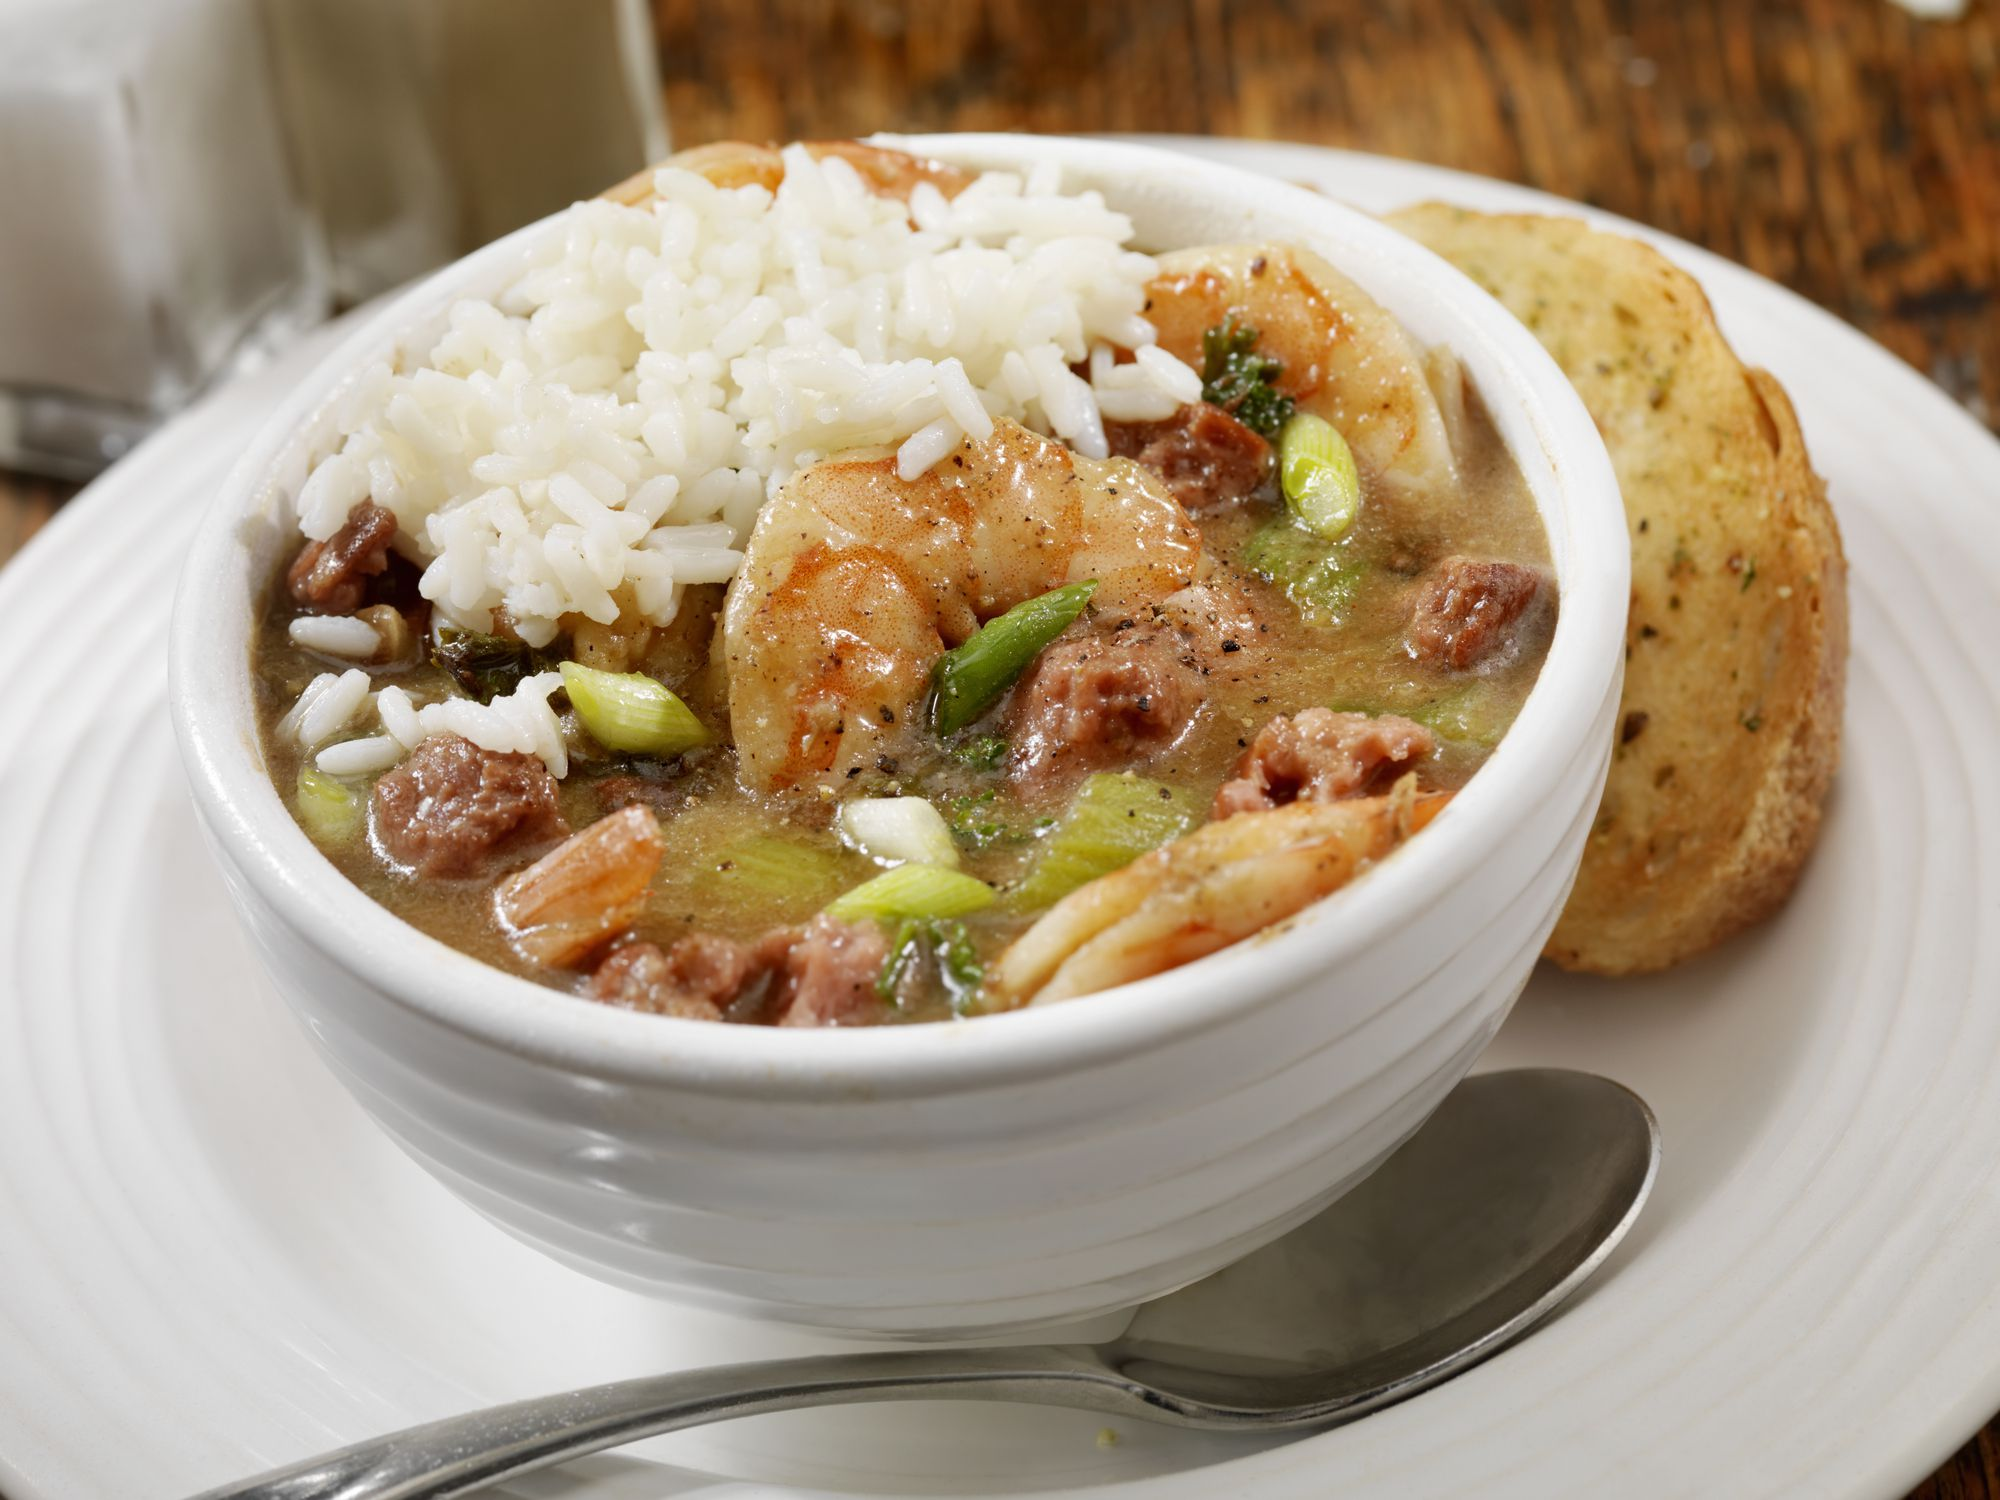 Gluten-Free New Orleans-Style Chicken and Sausage Gumbo